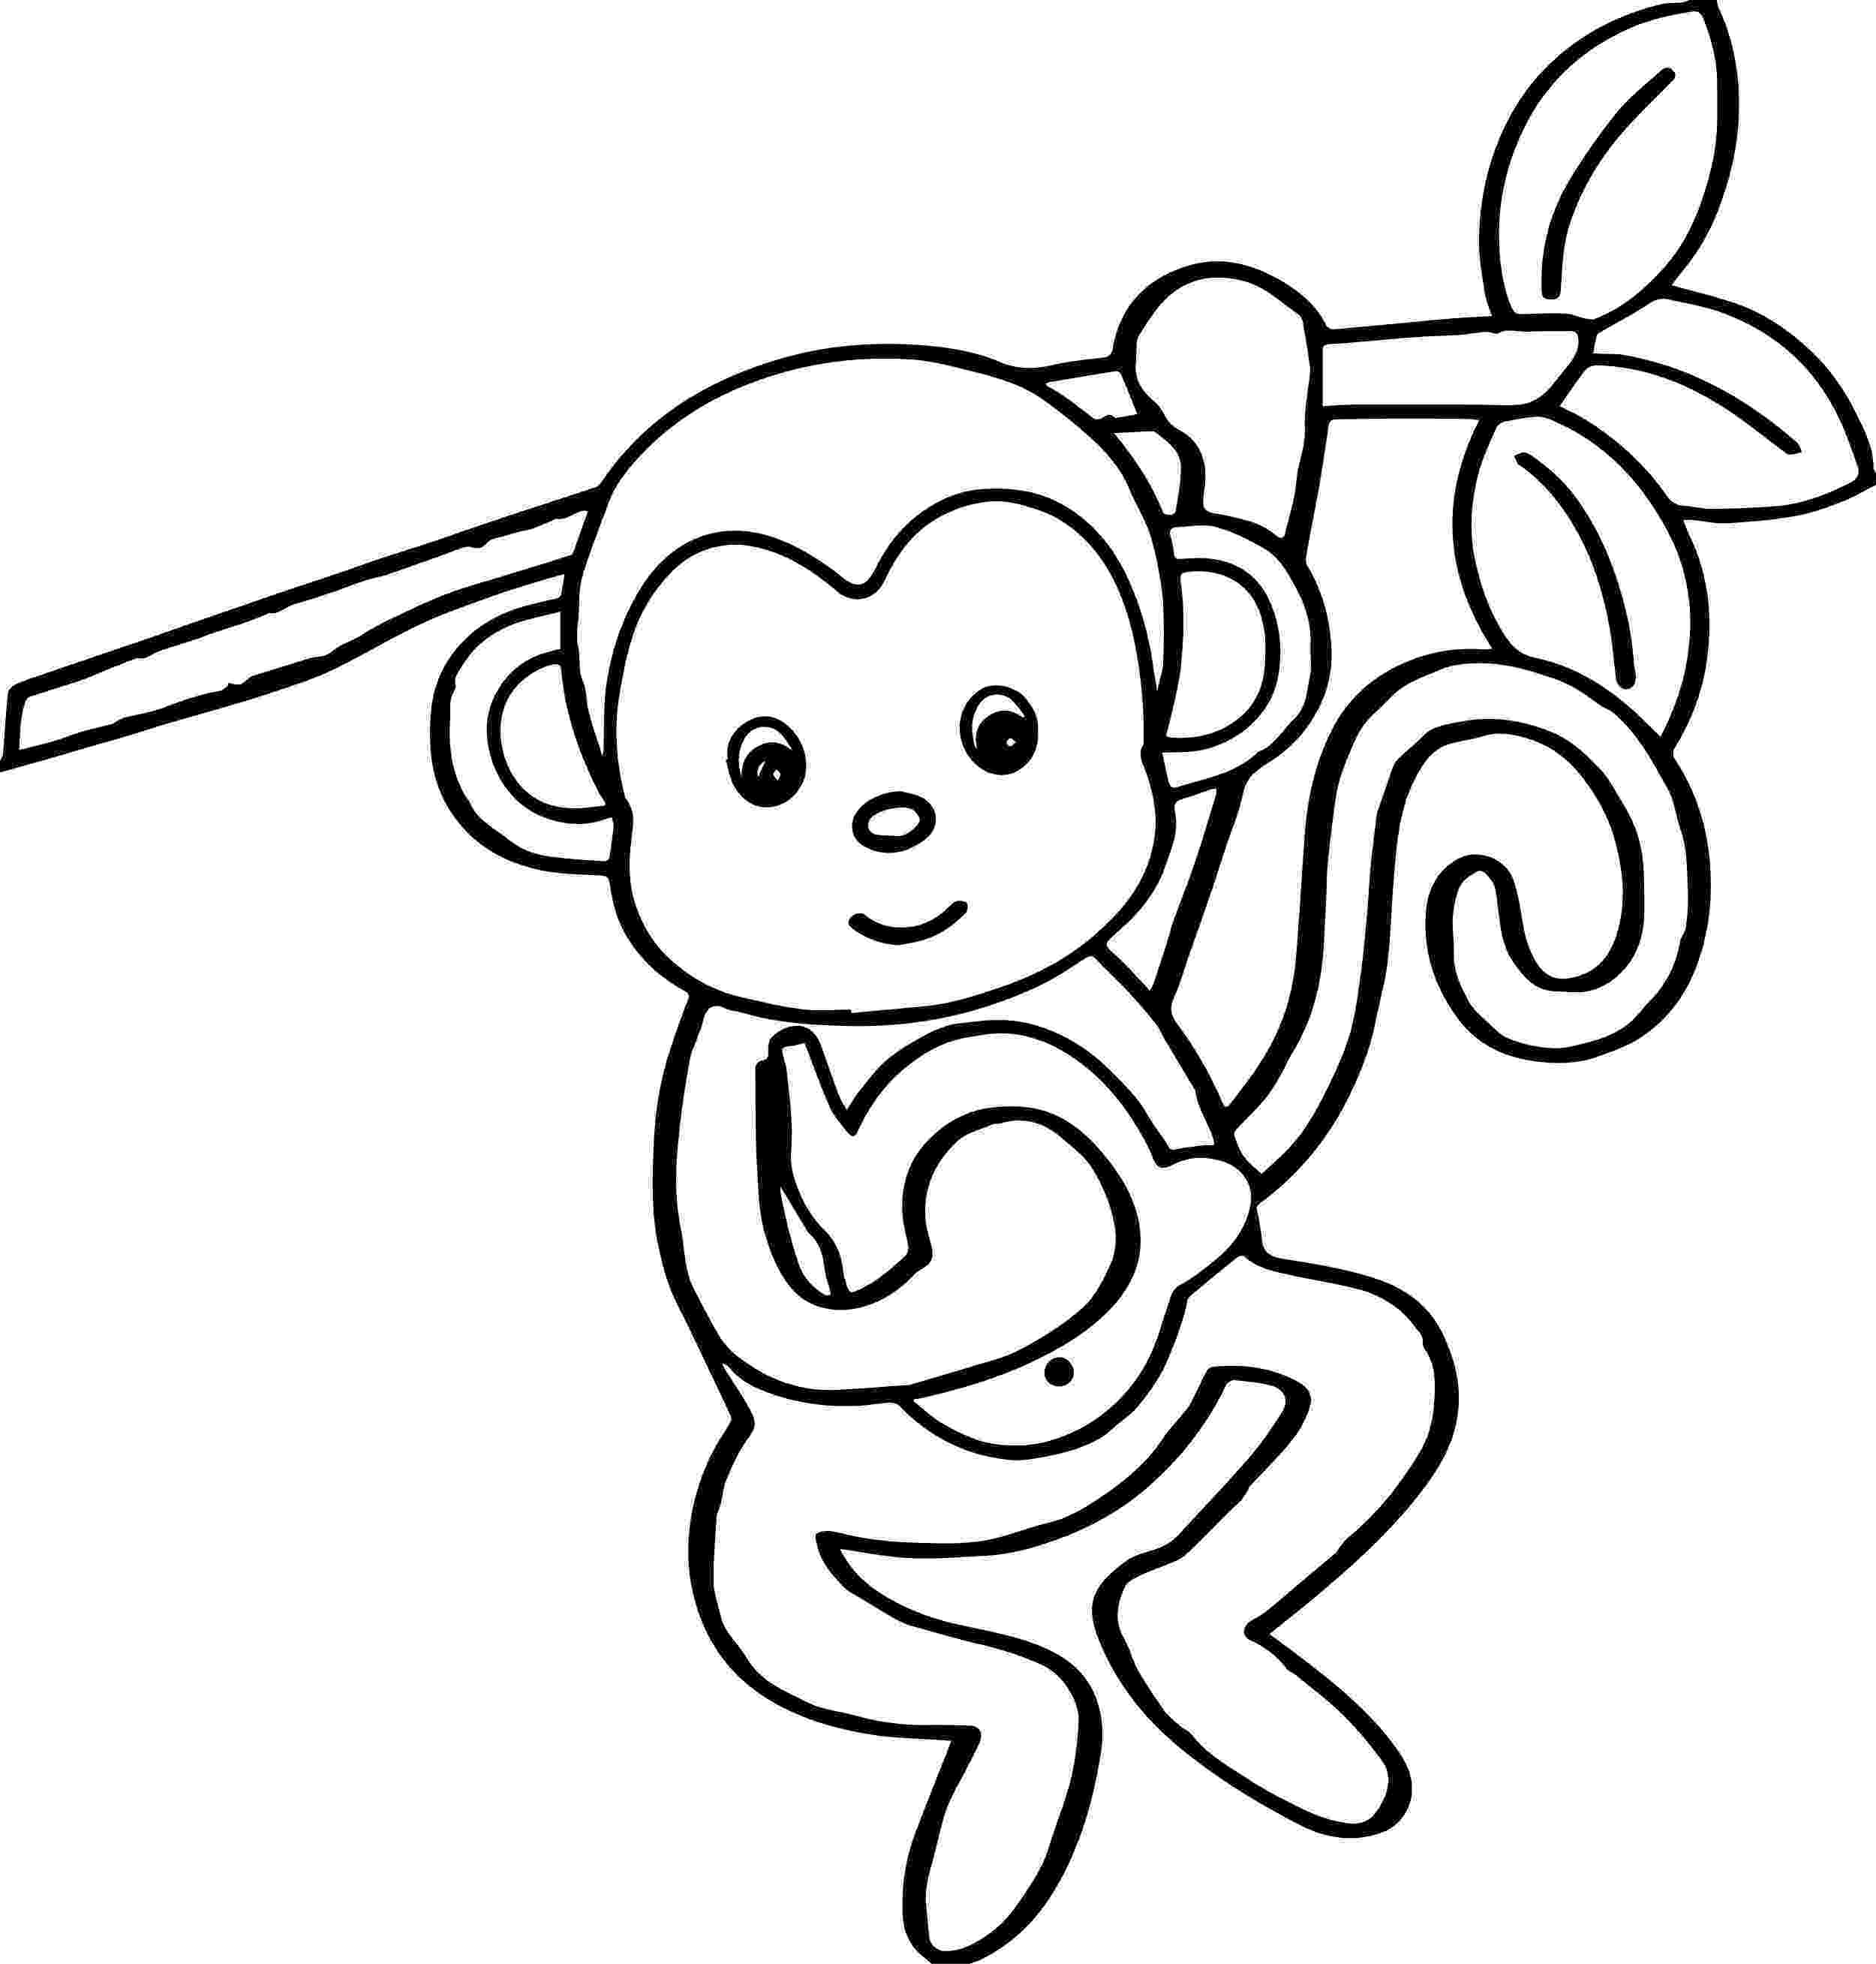 monkey color pages cute monkey coloring pages to download and print for free pages color monkey